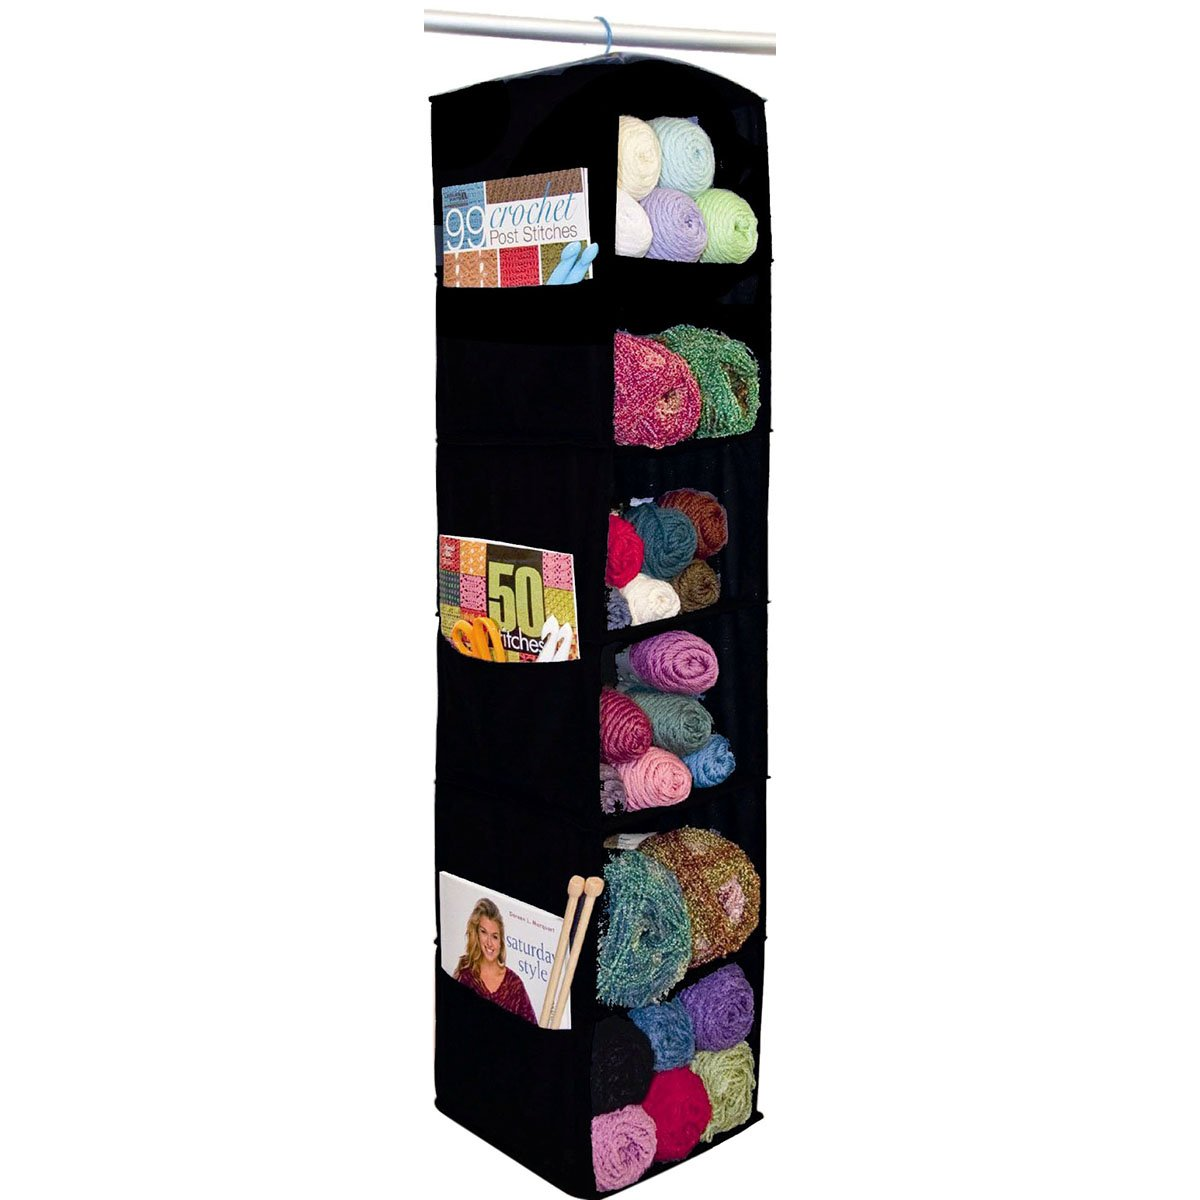 Innovative Home Creations Cottage Cuts 6-Shelf Yarn and Craft Organizer, 48 by 11 by 11-Inch, Black 4850-BLK